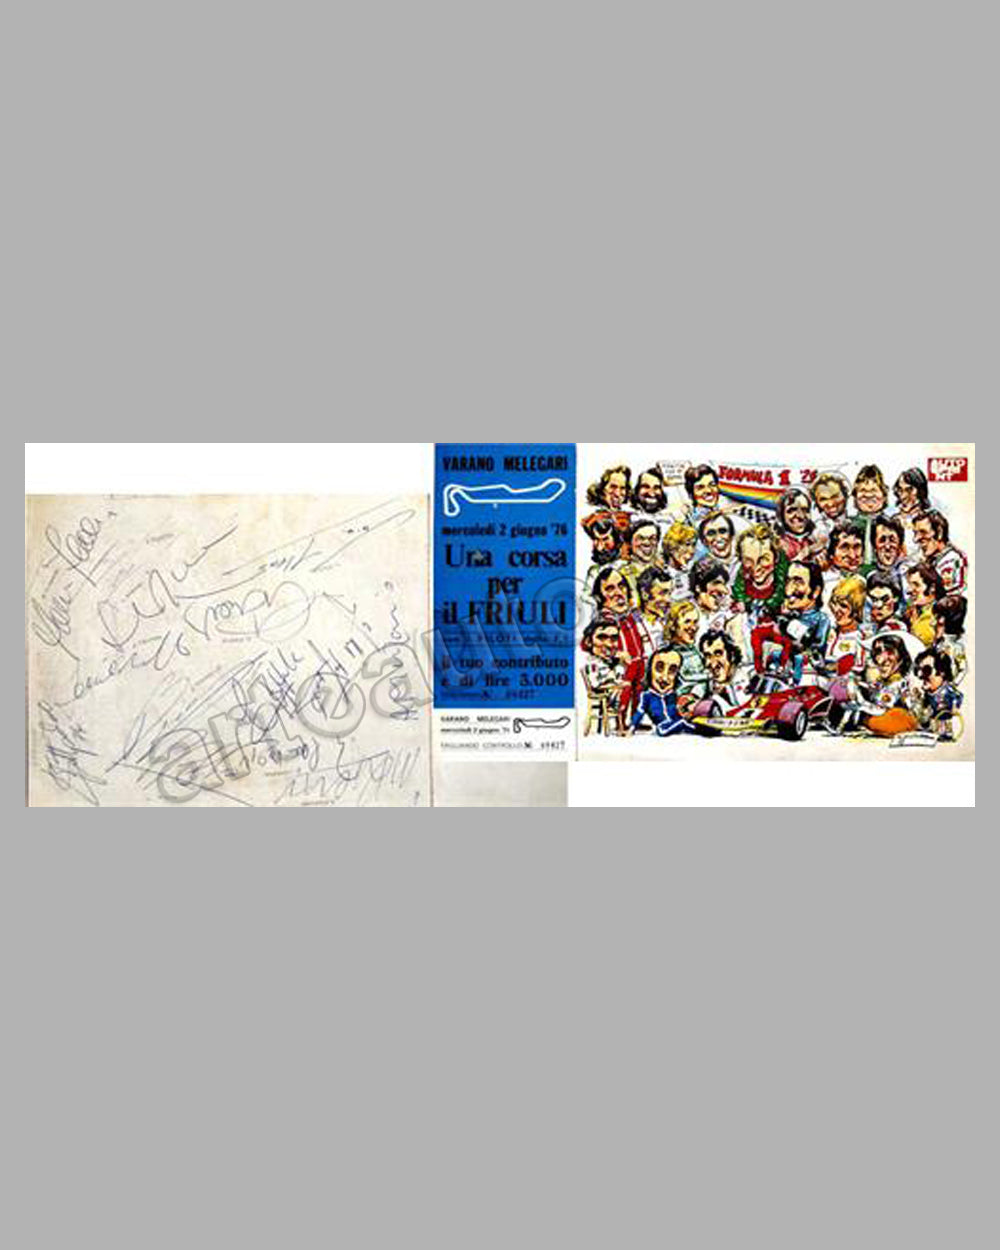 Una corsa per il Friuli-1976 admission ticket with souvenir print, fourteen autographs